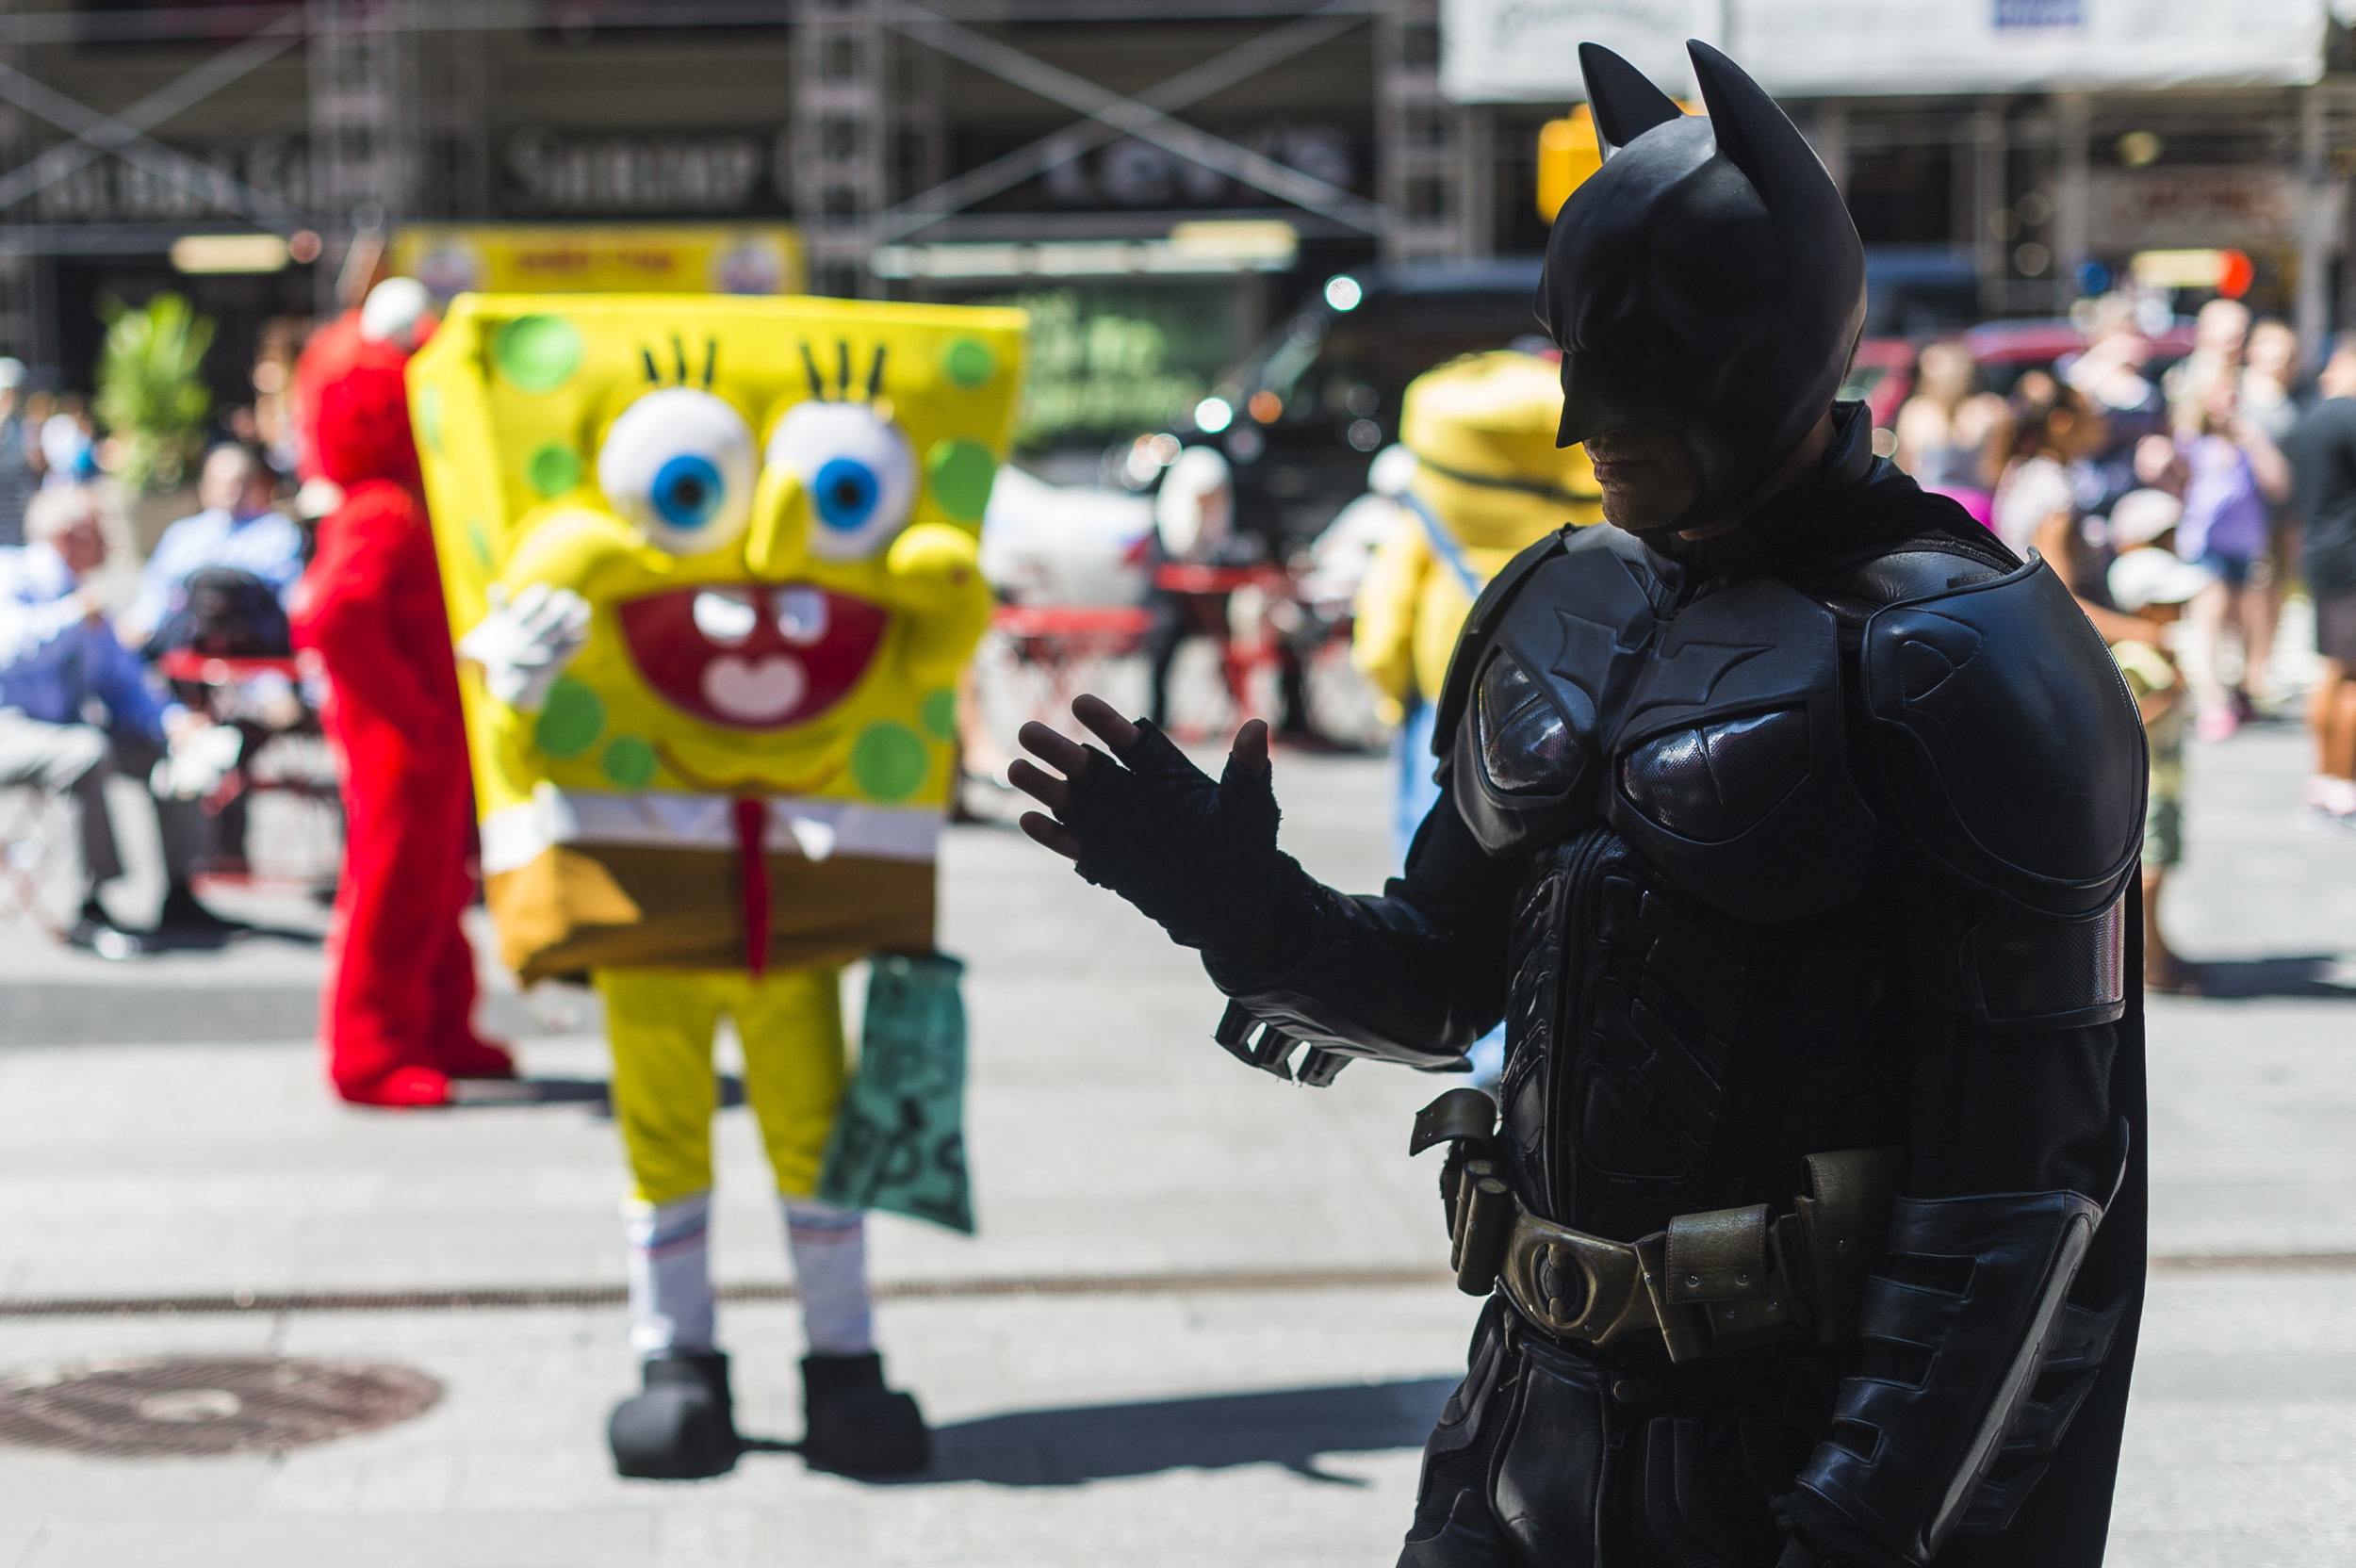 A costumed Sponge Bob watches as Jose waves to passersby.